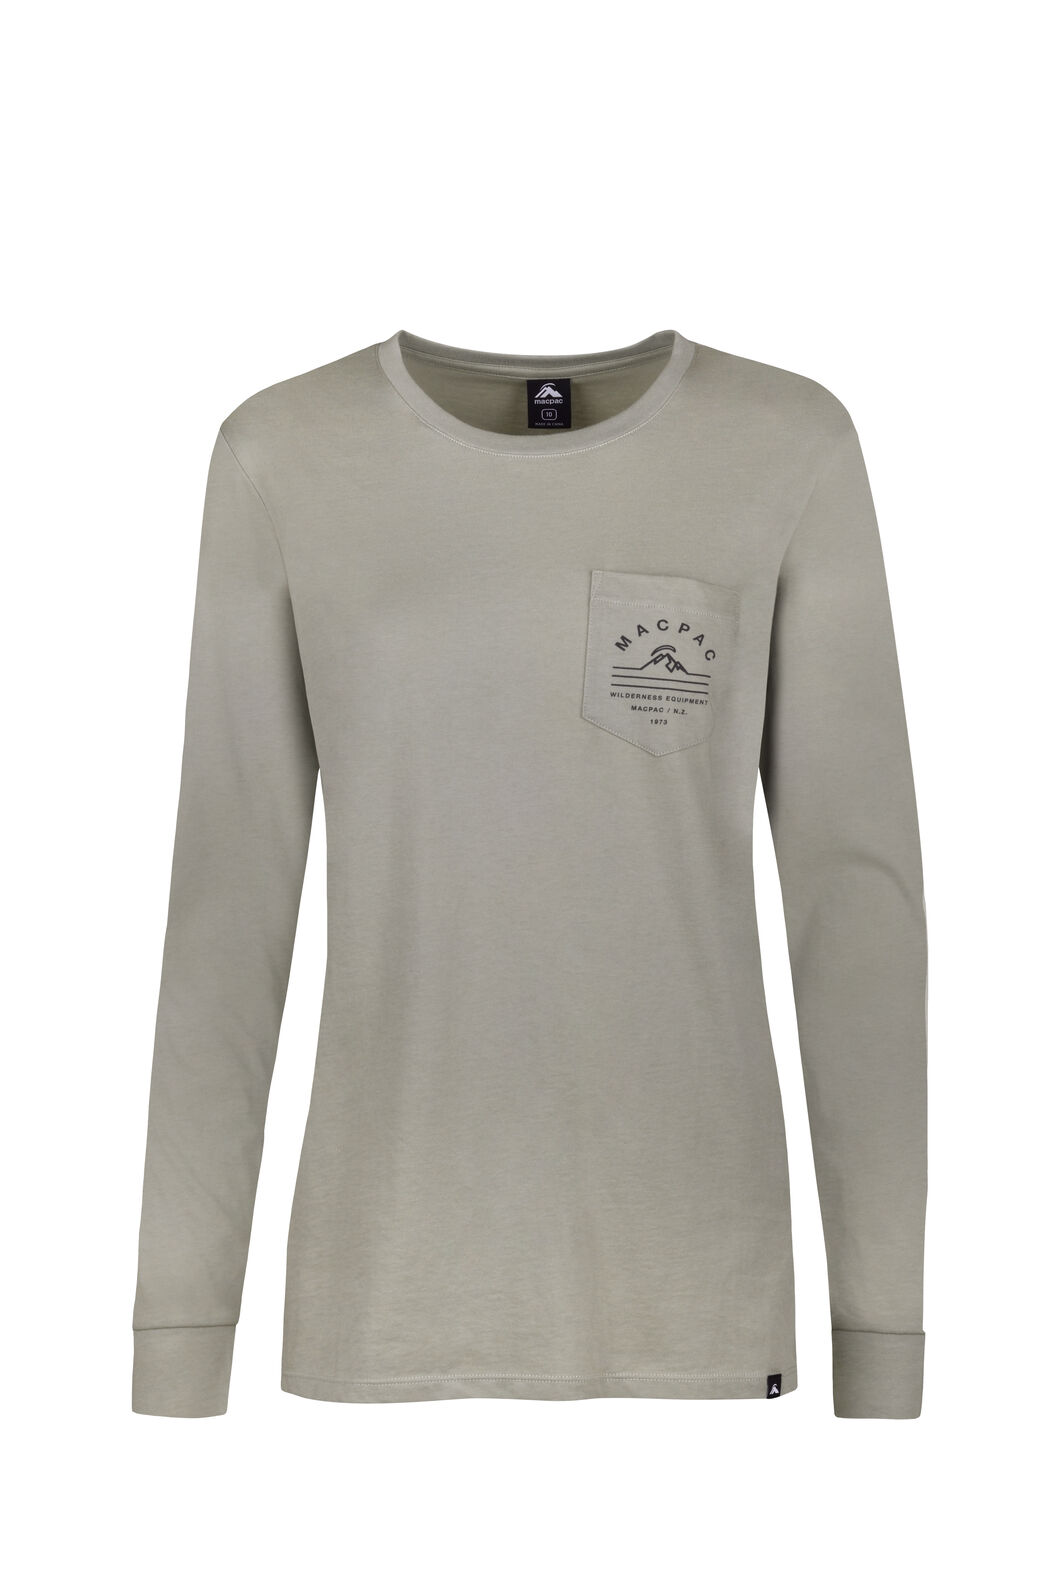 Macpac Alps Organic Long Sleeve Tee — Women's, Seagrass, hi-res